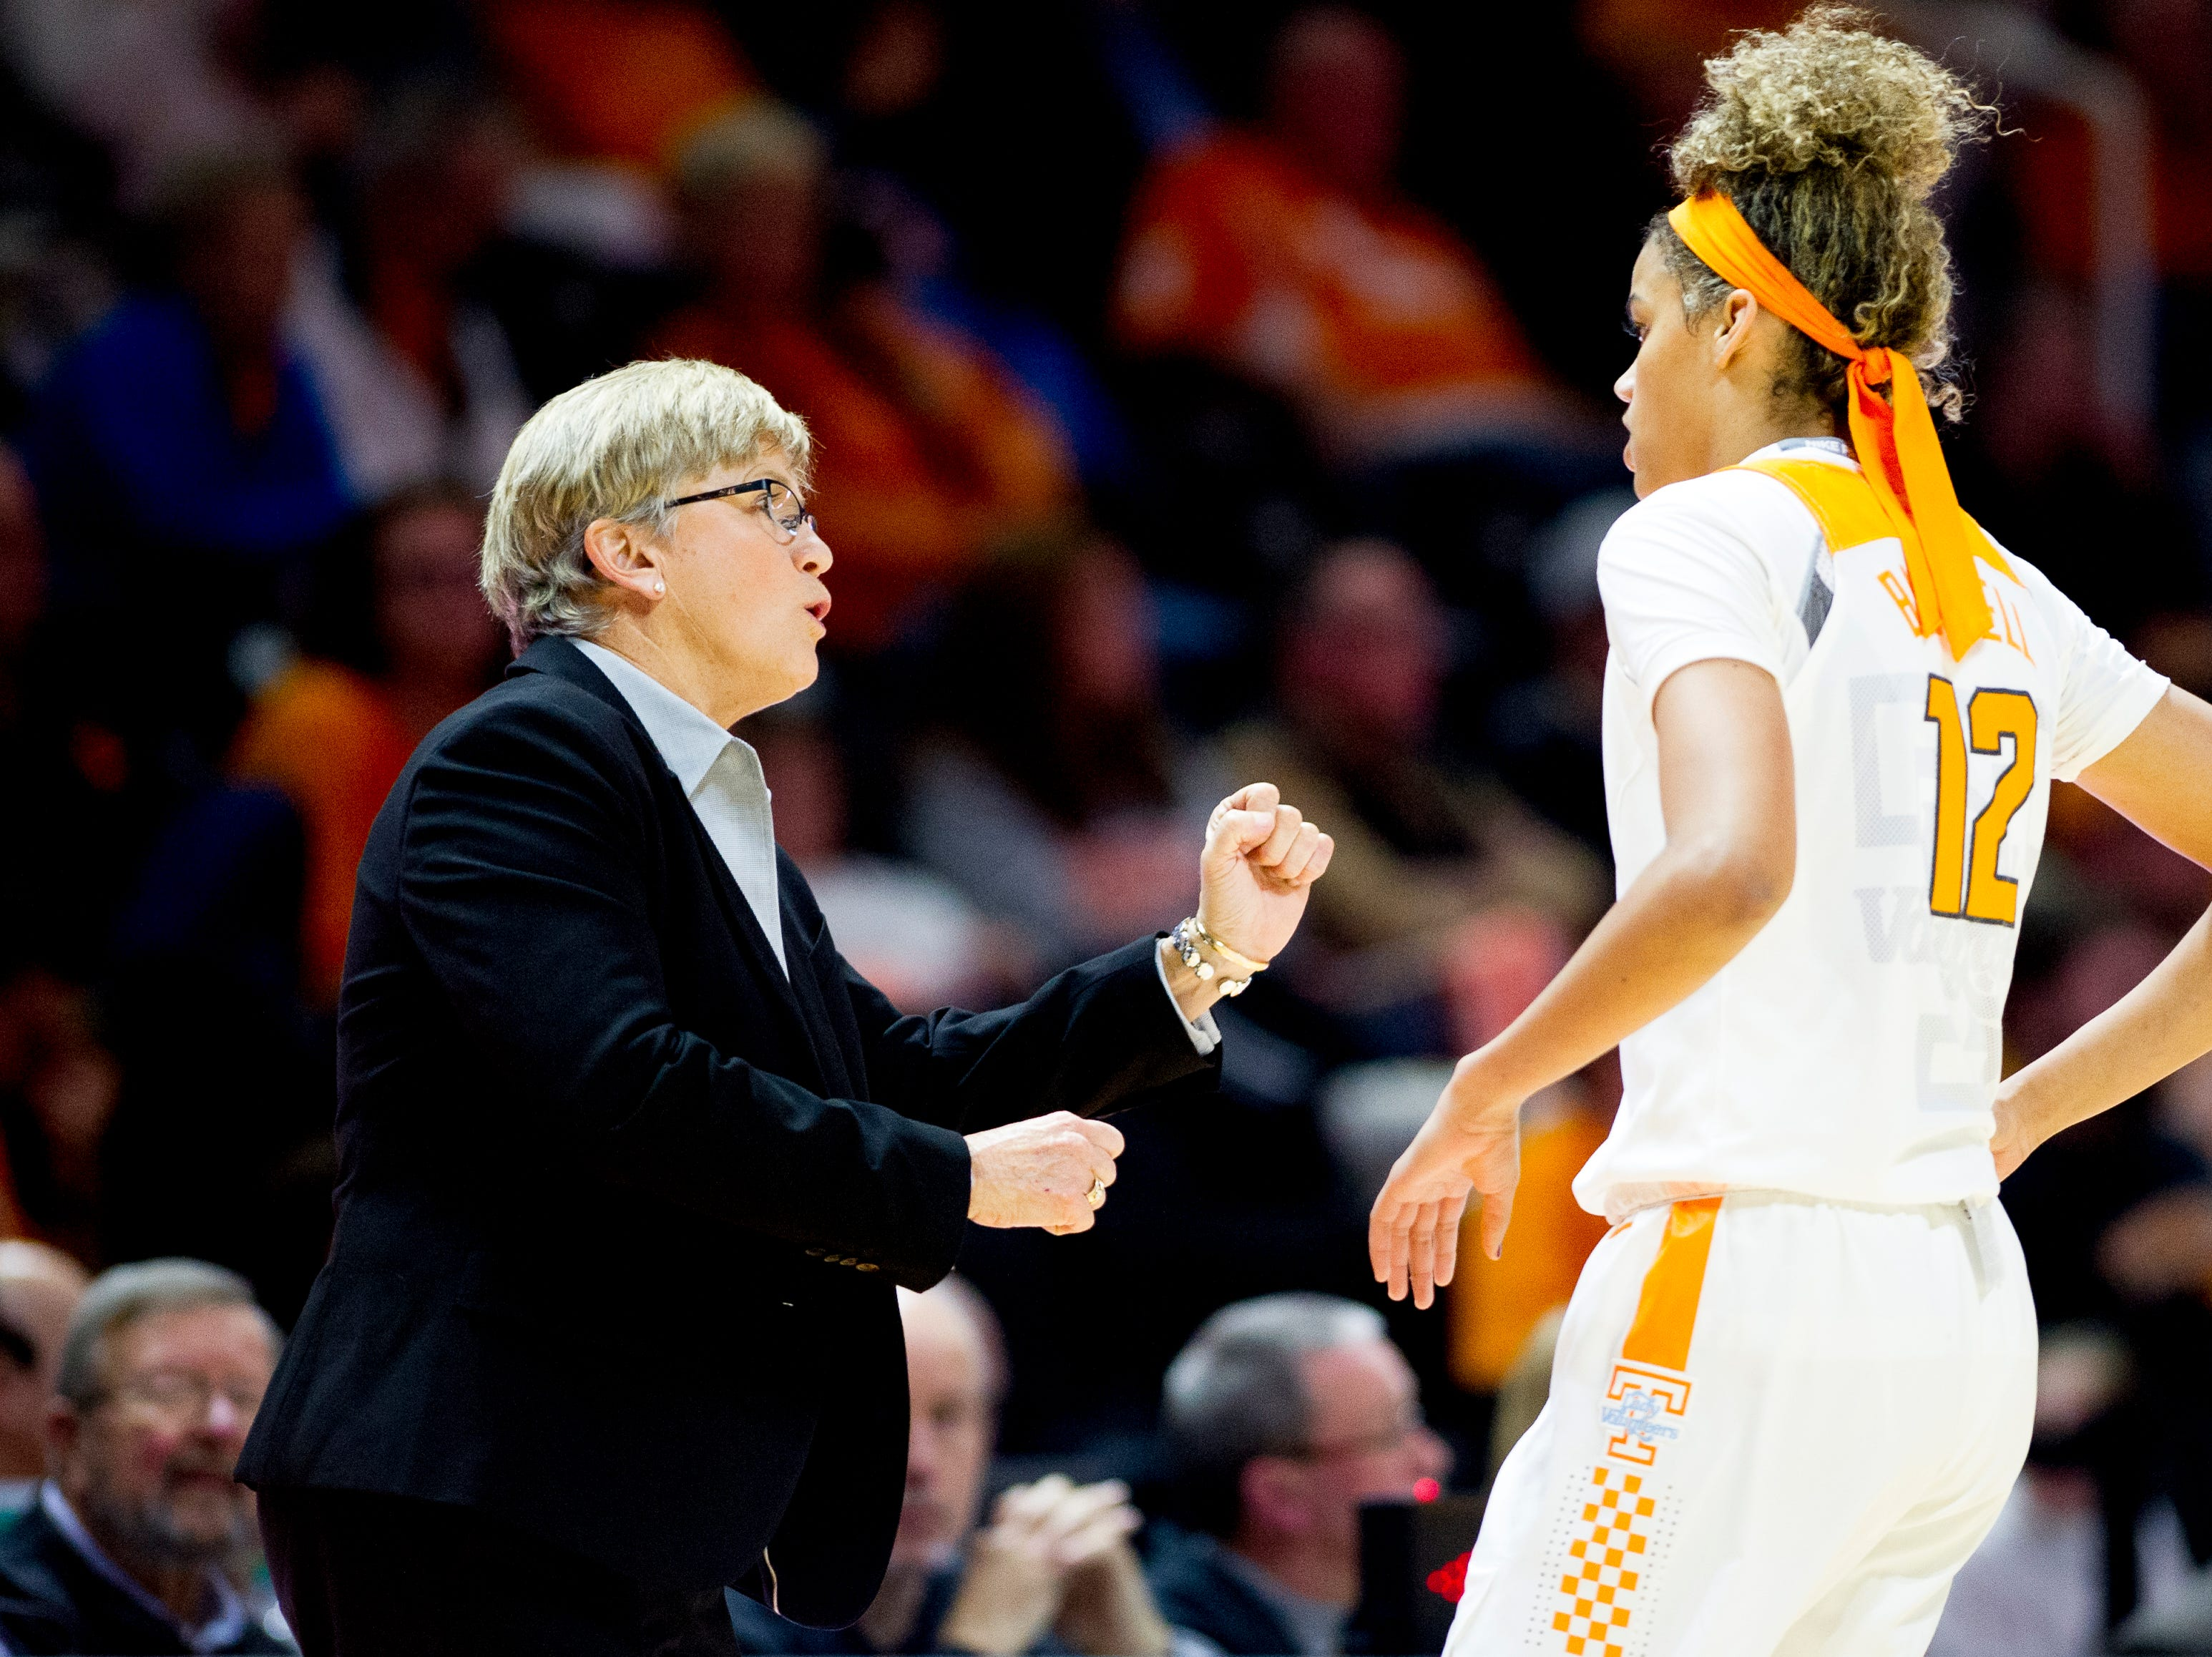 Tennessee Head Coach Holly Warlick speaks with Tennessee guard/forward Rae Burrell (12) during a game between the Tennessee Lady Vols and Murray State at Thompson-Boling Arena in Knoxville, Tennessee on Friday, December 28, 2018.